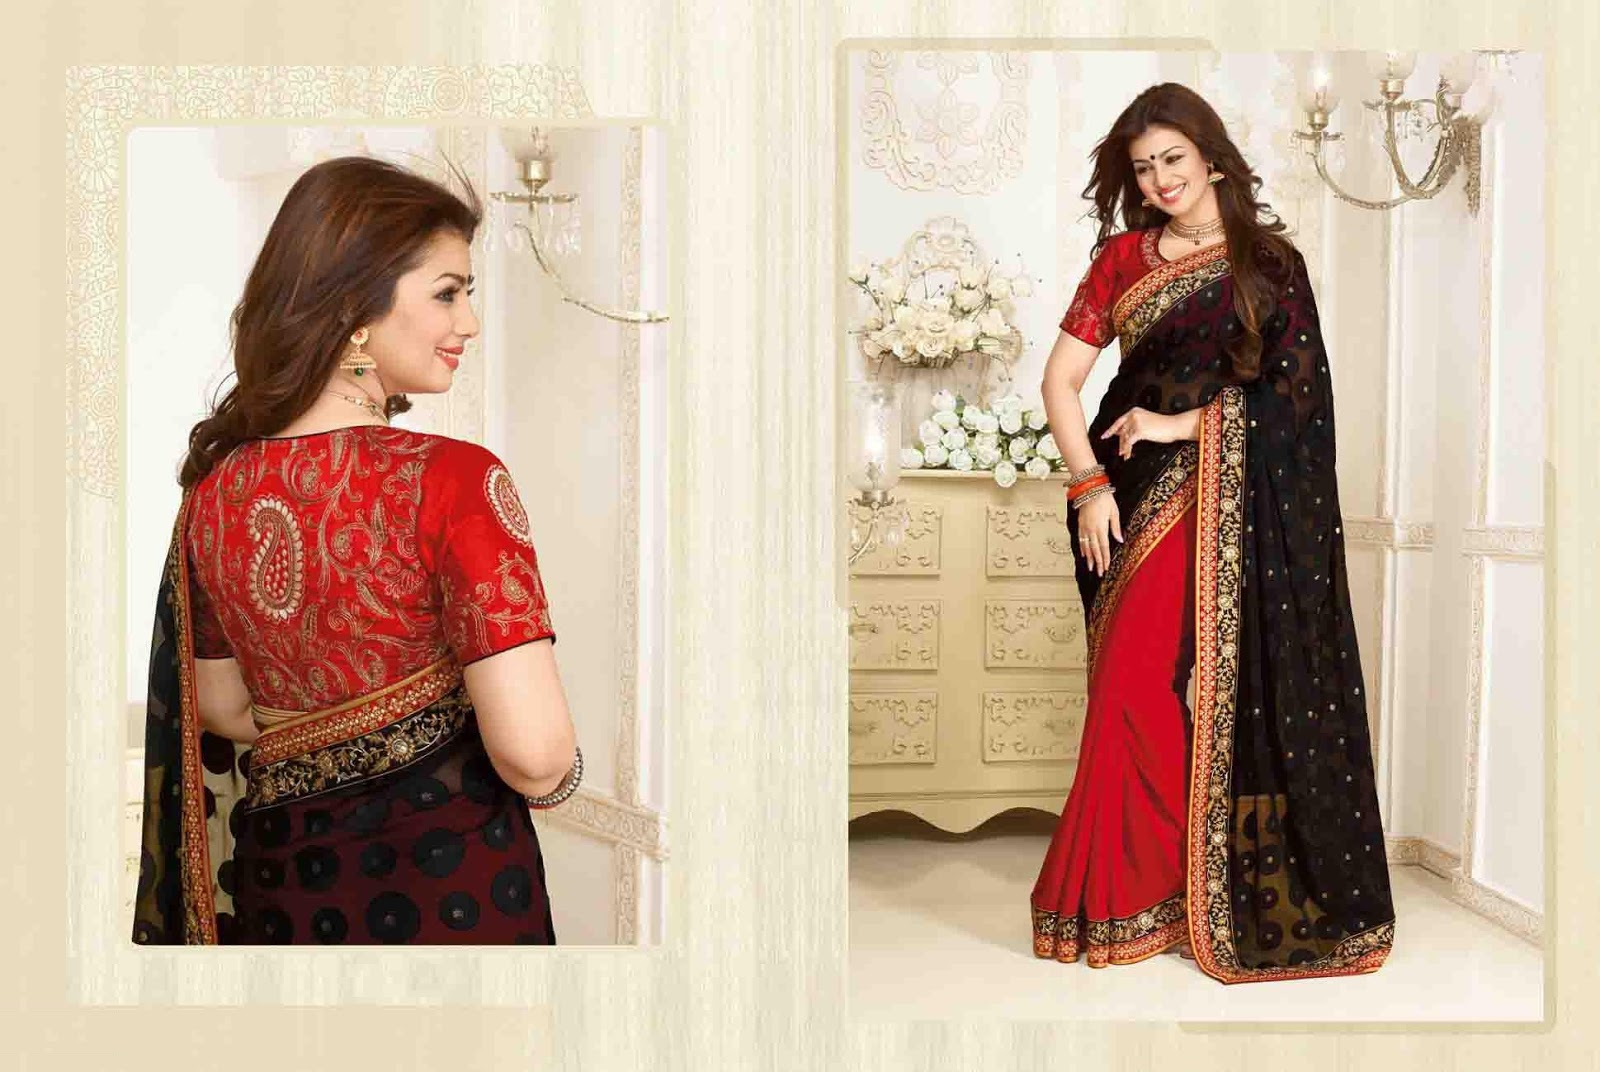 Resham Work Red & Black Brasso Saree With Raw Silk Blouse